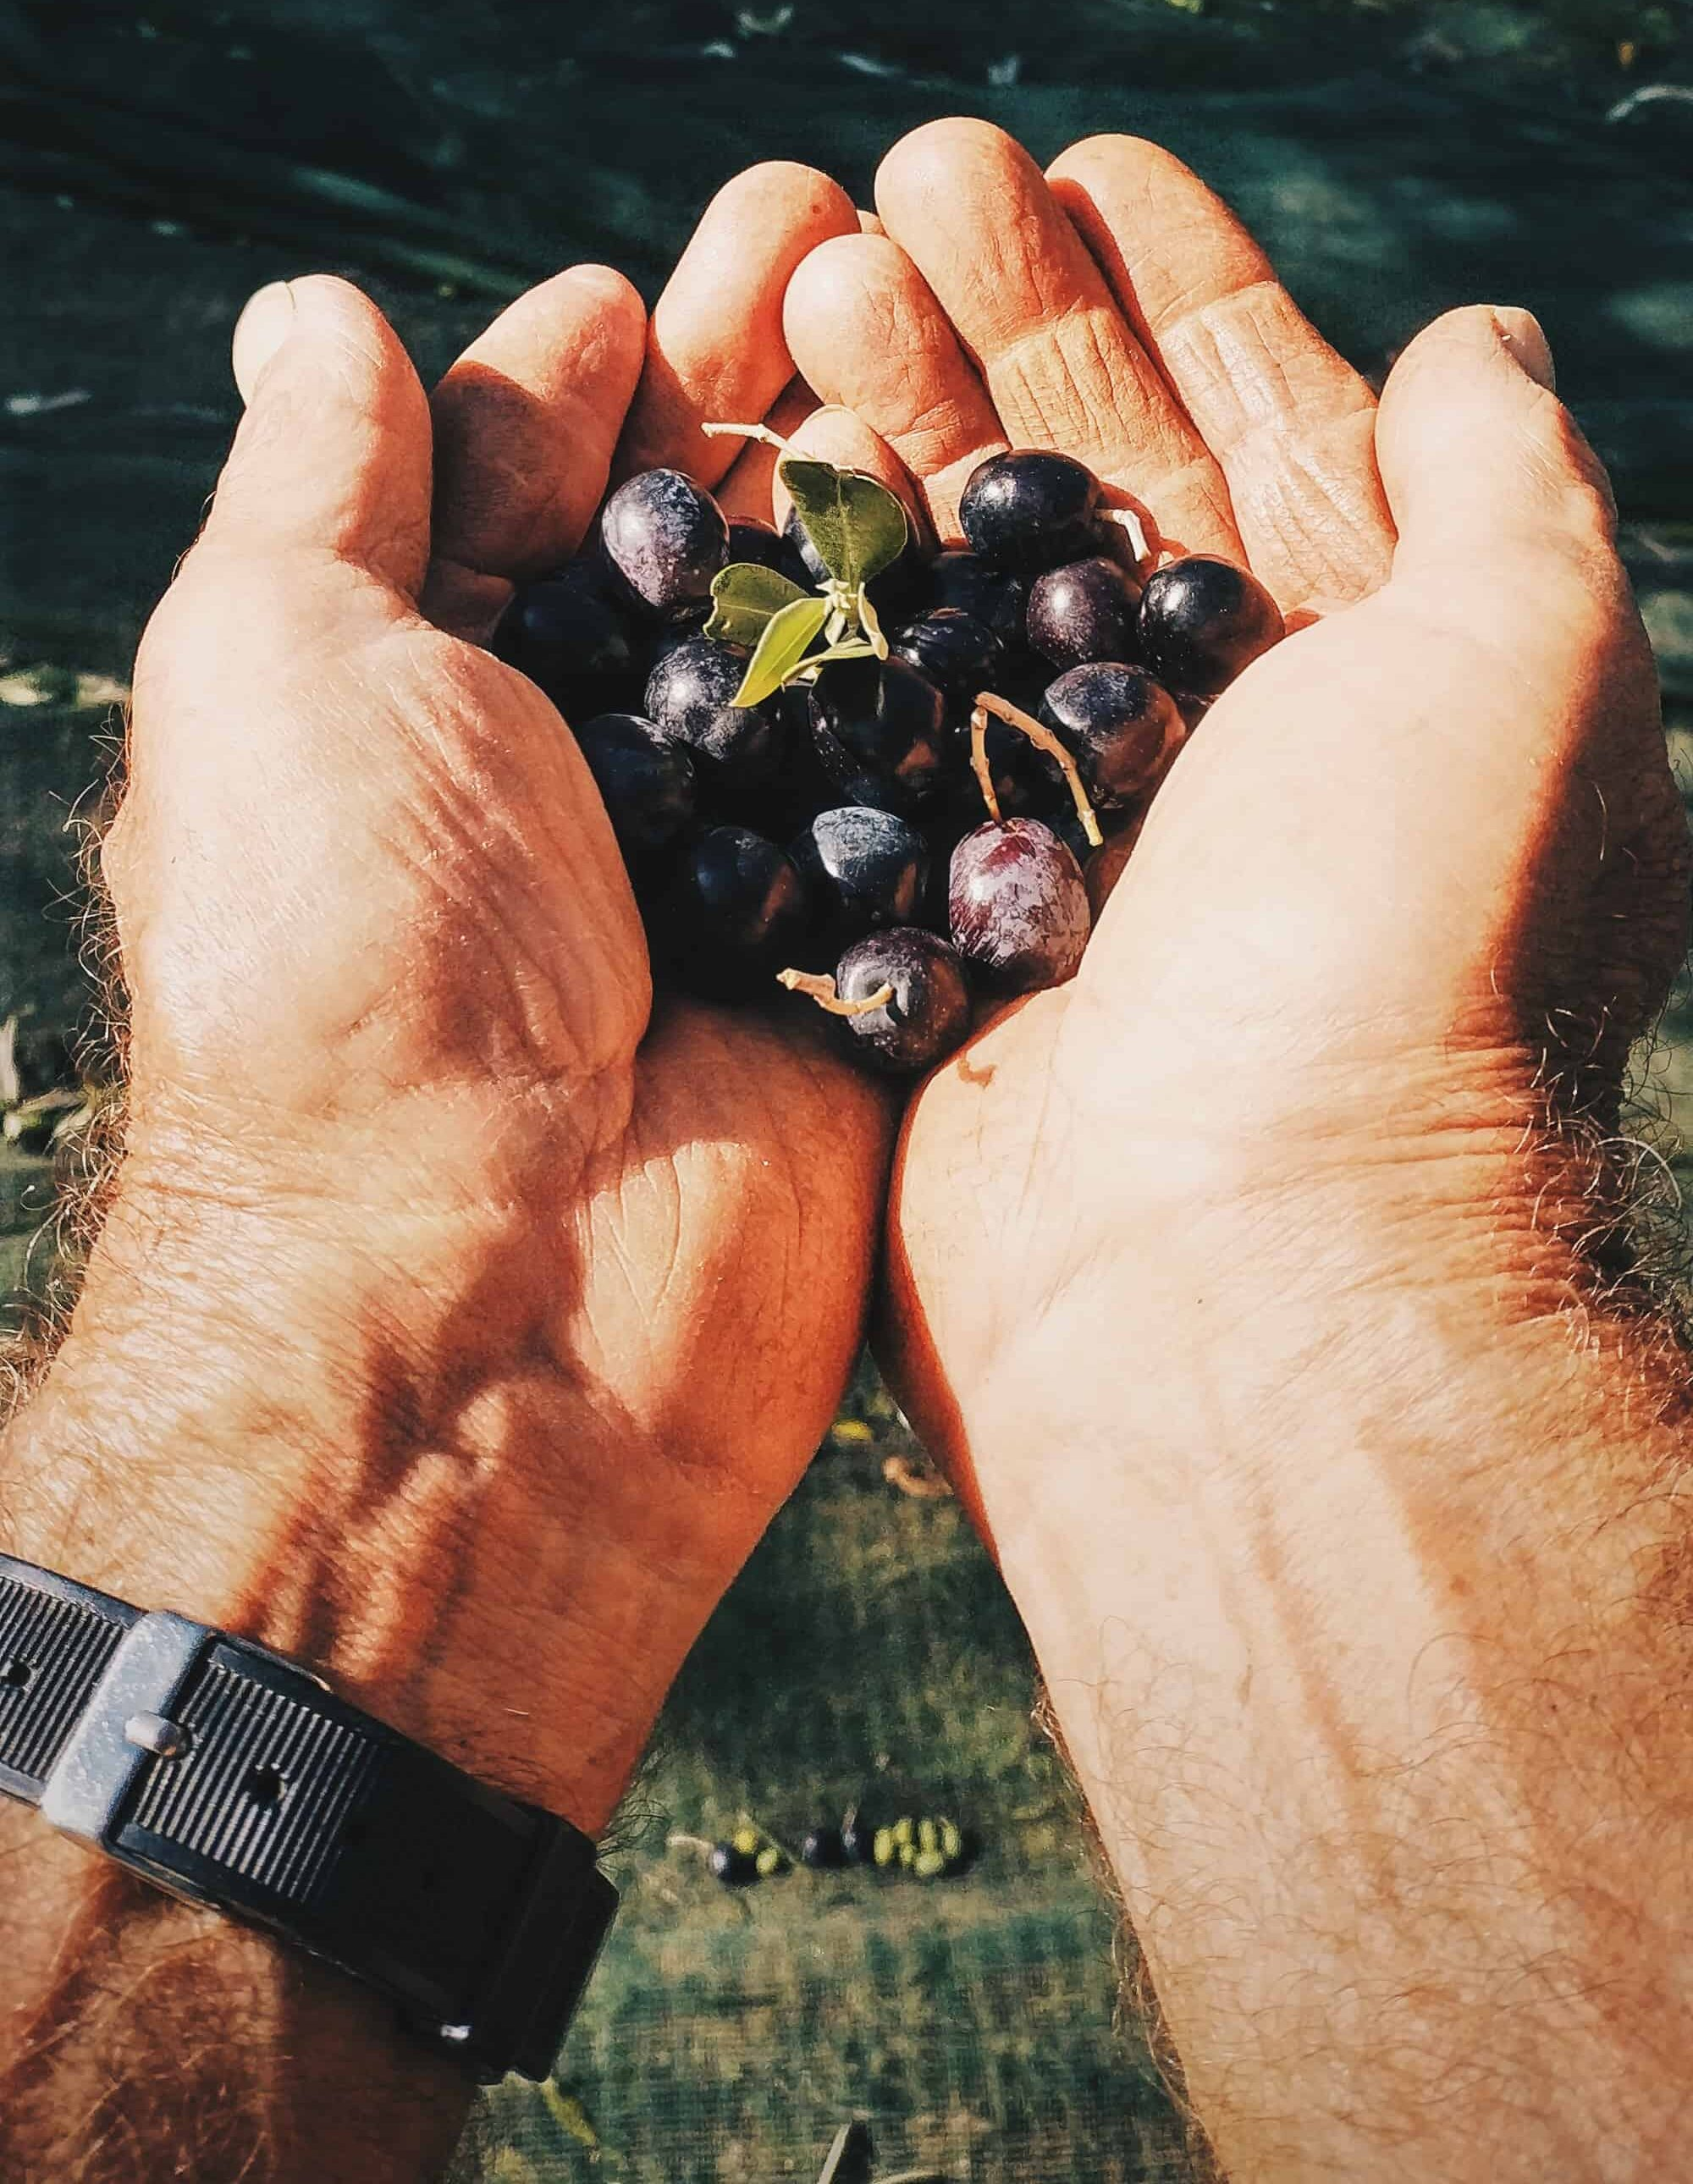 EVO olive oil and industrial oil: what are the differences?